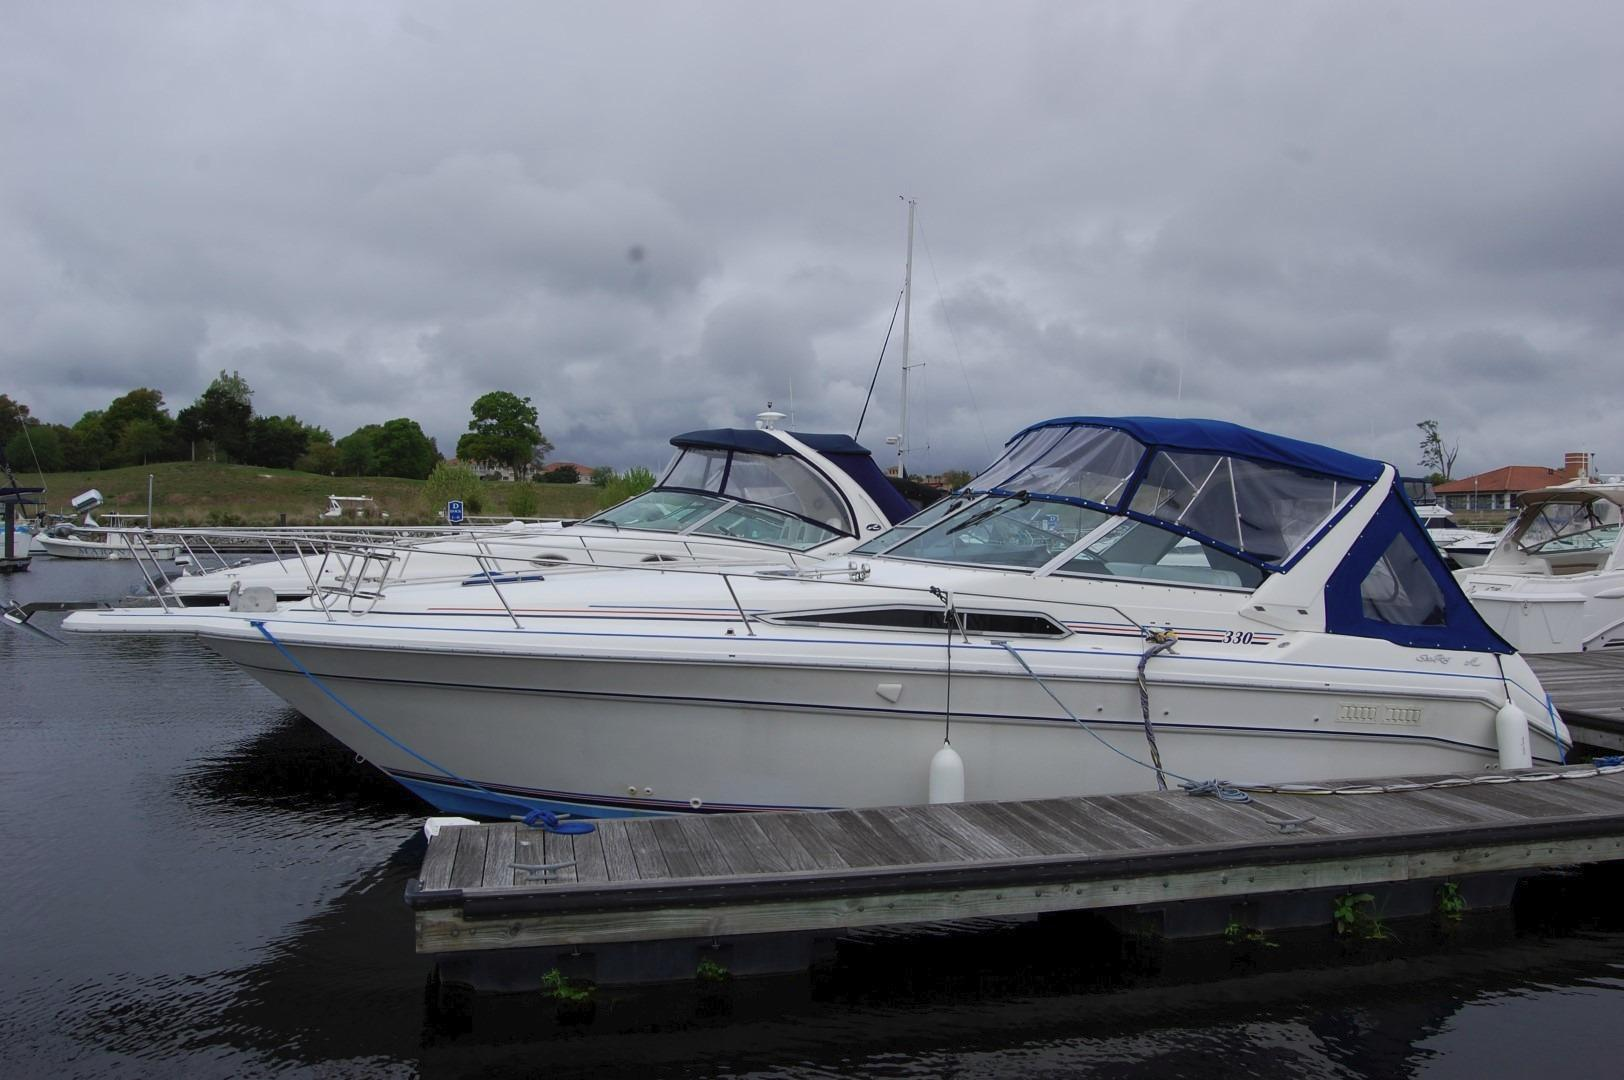 Boats For Sale In Wv >> 1992 Sea Ray 330 Sundancer Power Boat For Sale - www.yachtworld.com